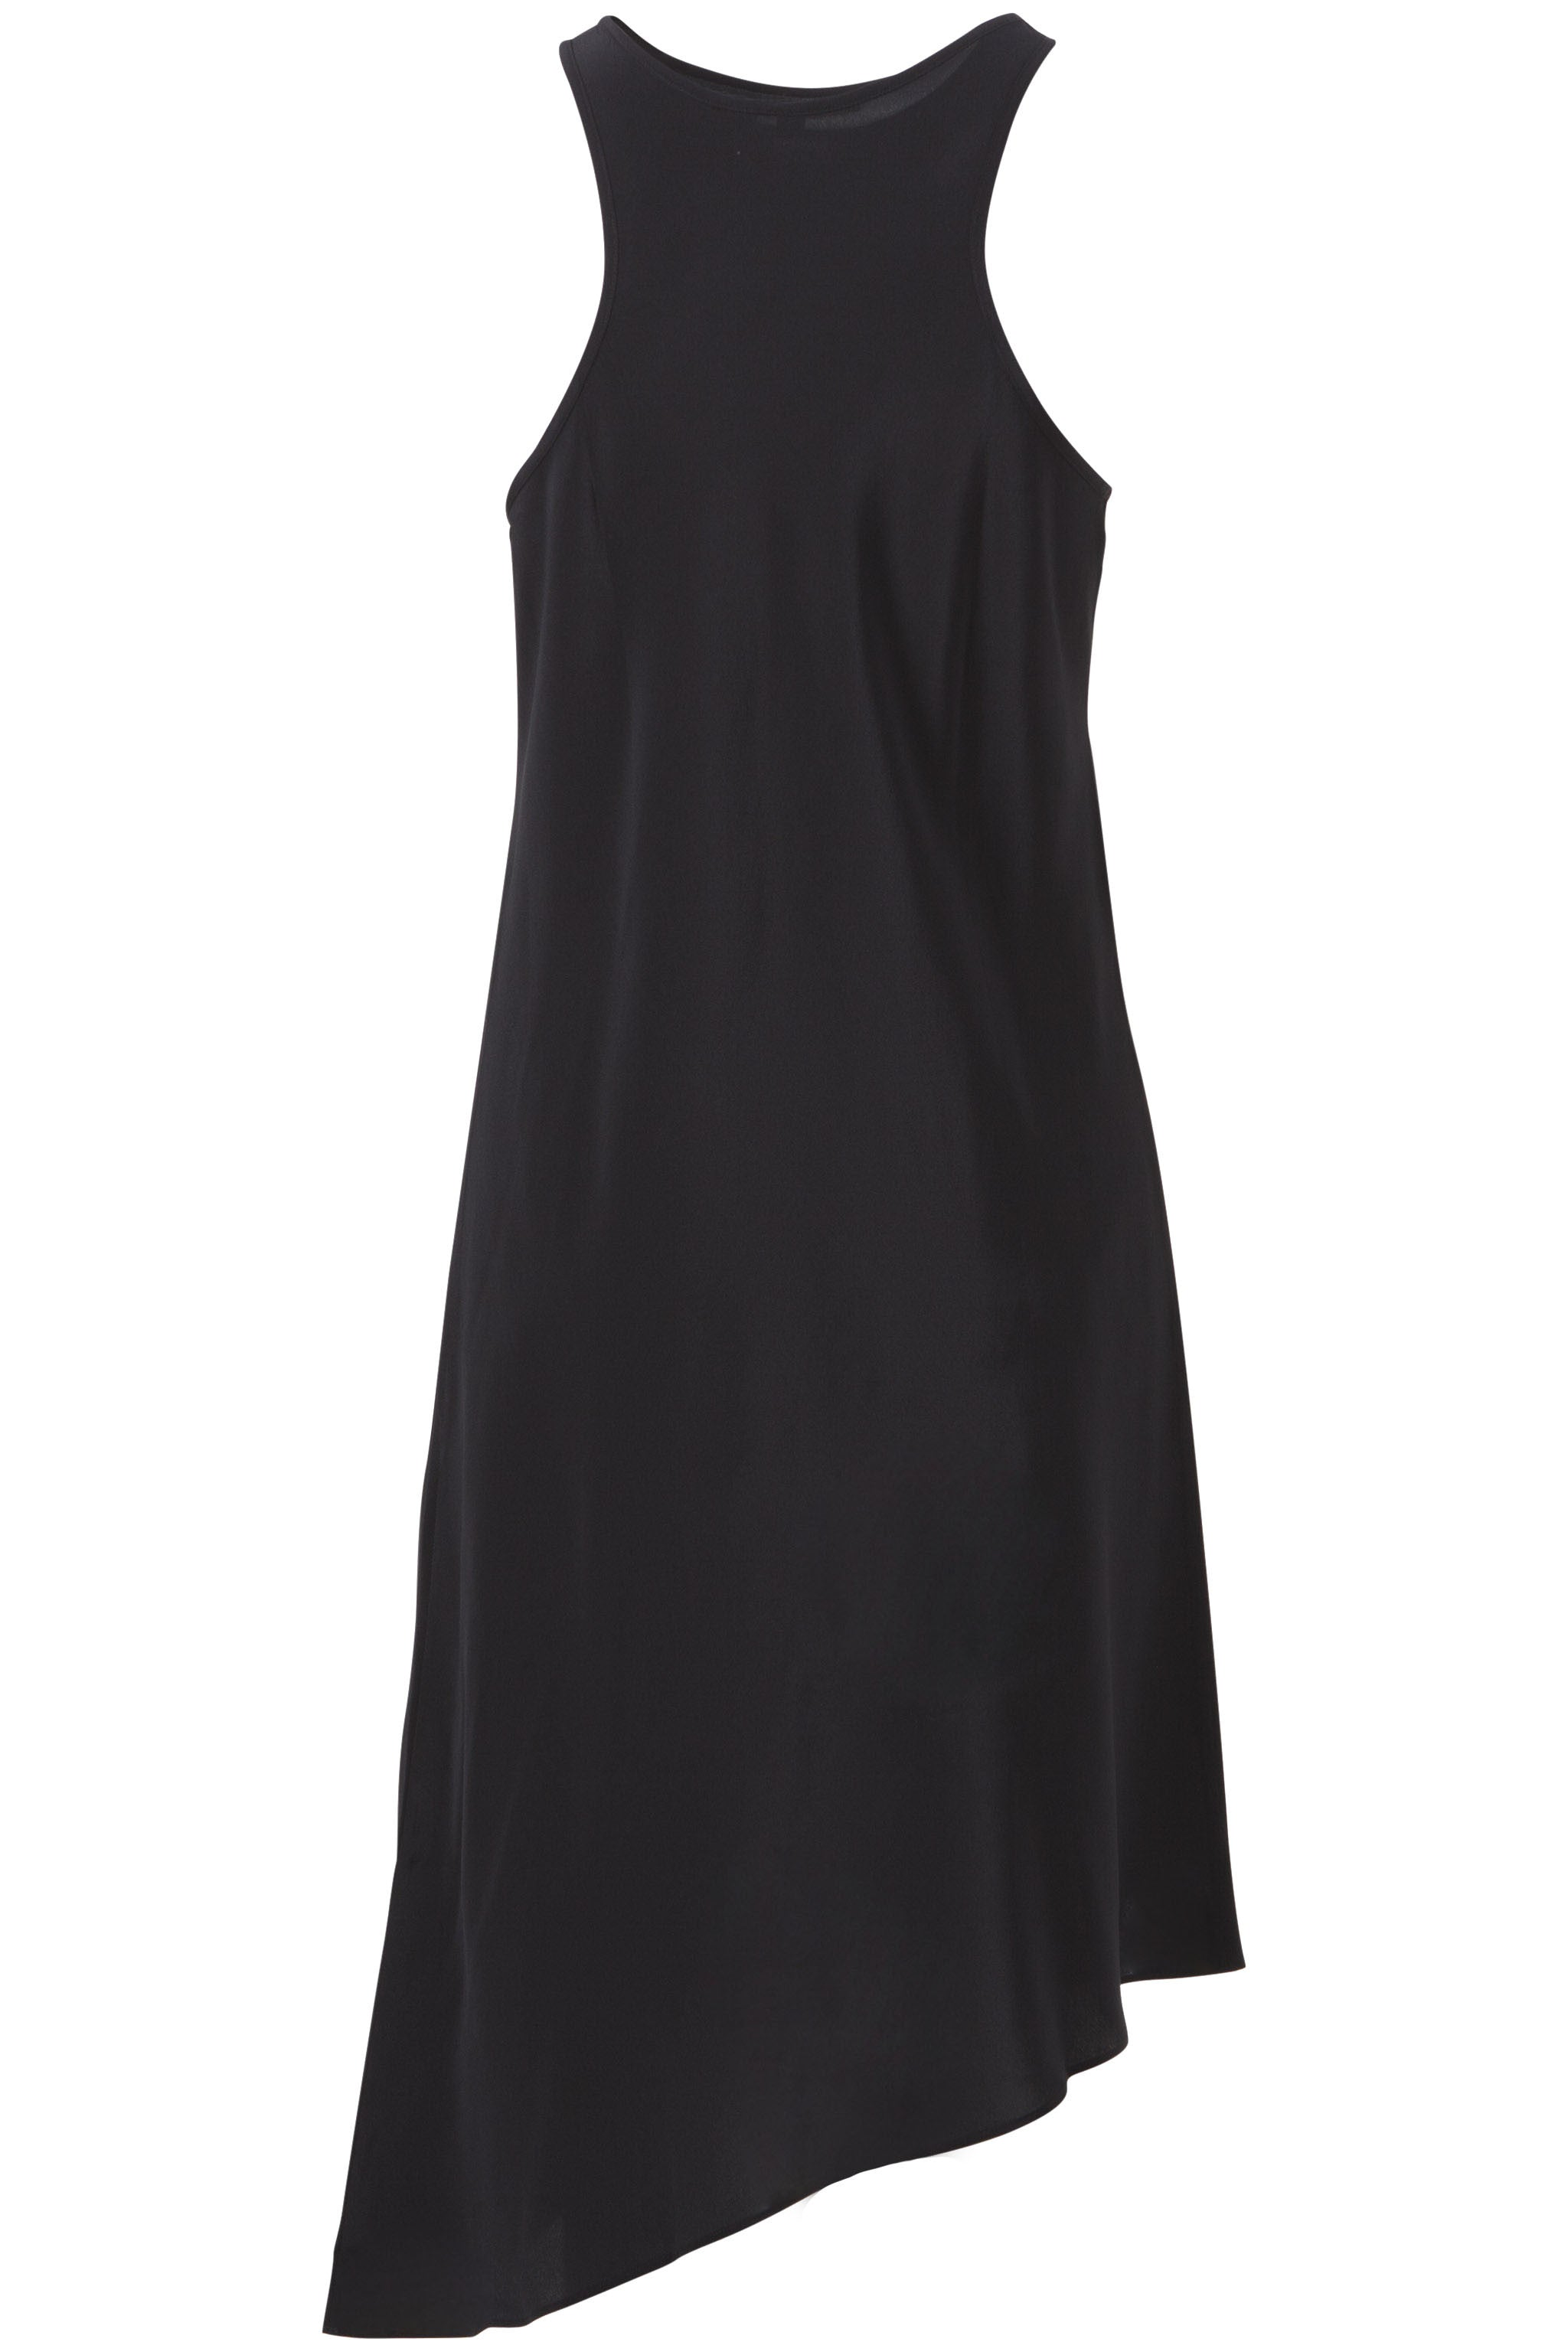 The Asymmetric Tank Dress